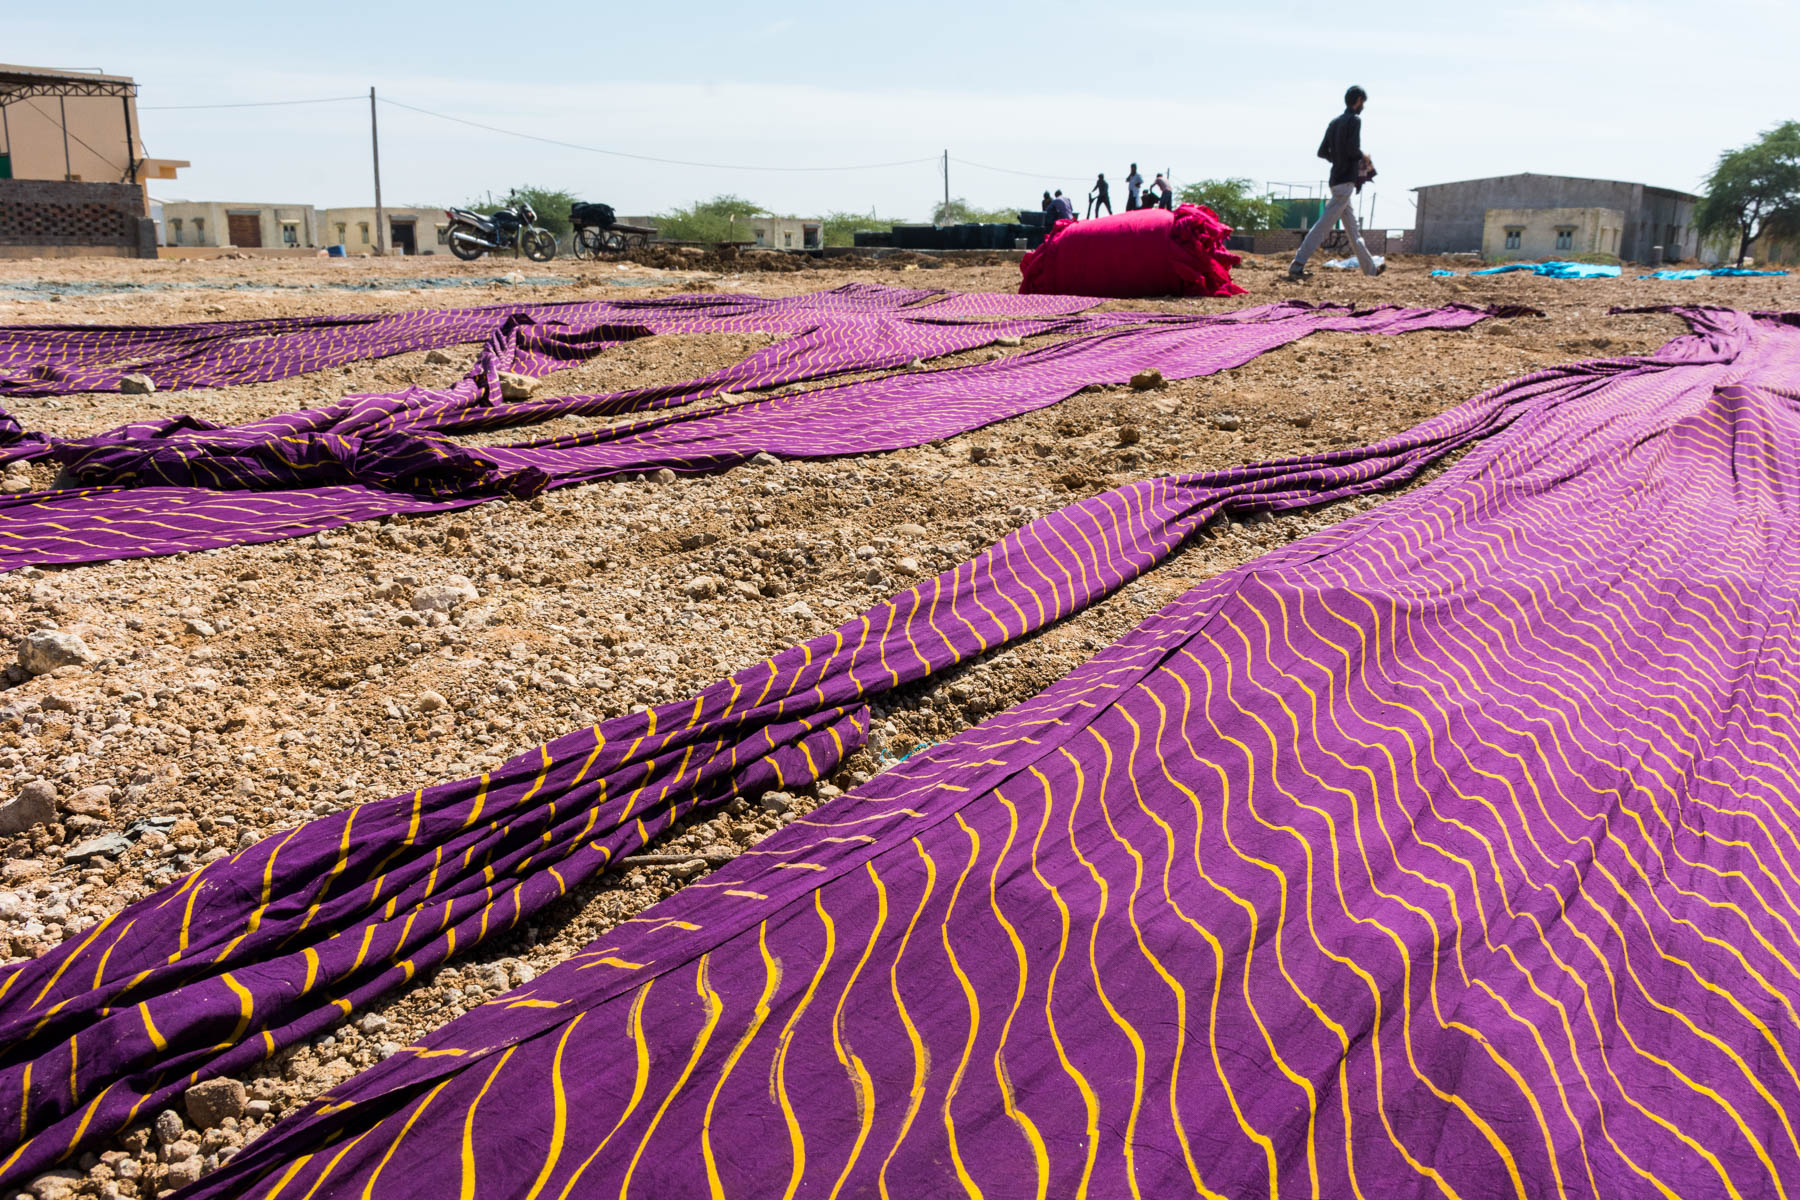 Textiles and crafts of Kutch, Gujarat, India - Block printed fabric drying in the sun in Ajrakhpur - Lost With Purpose